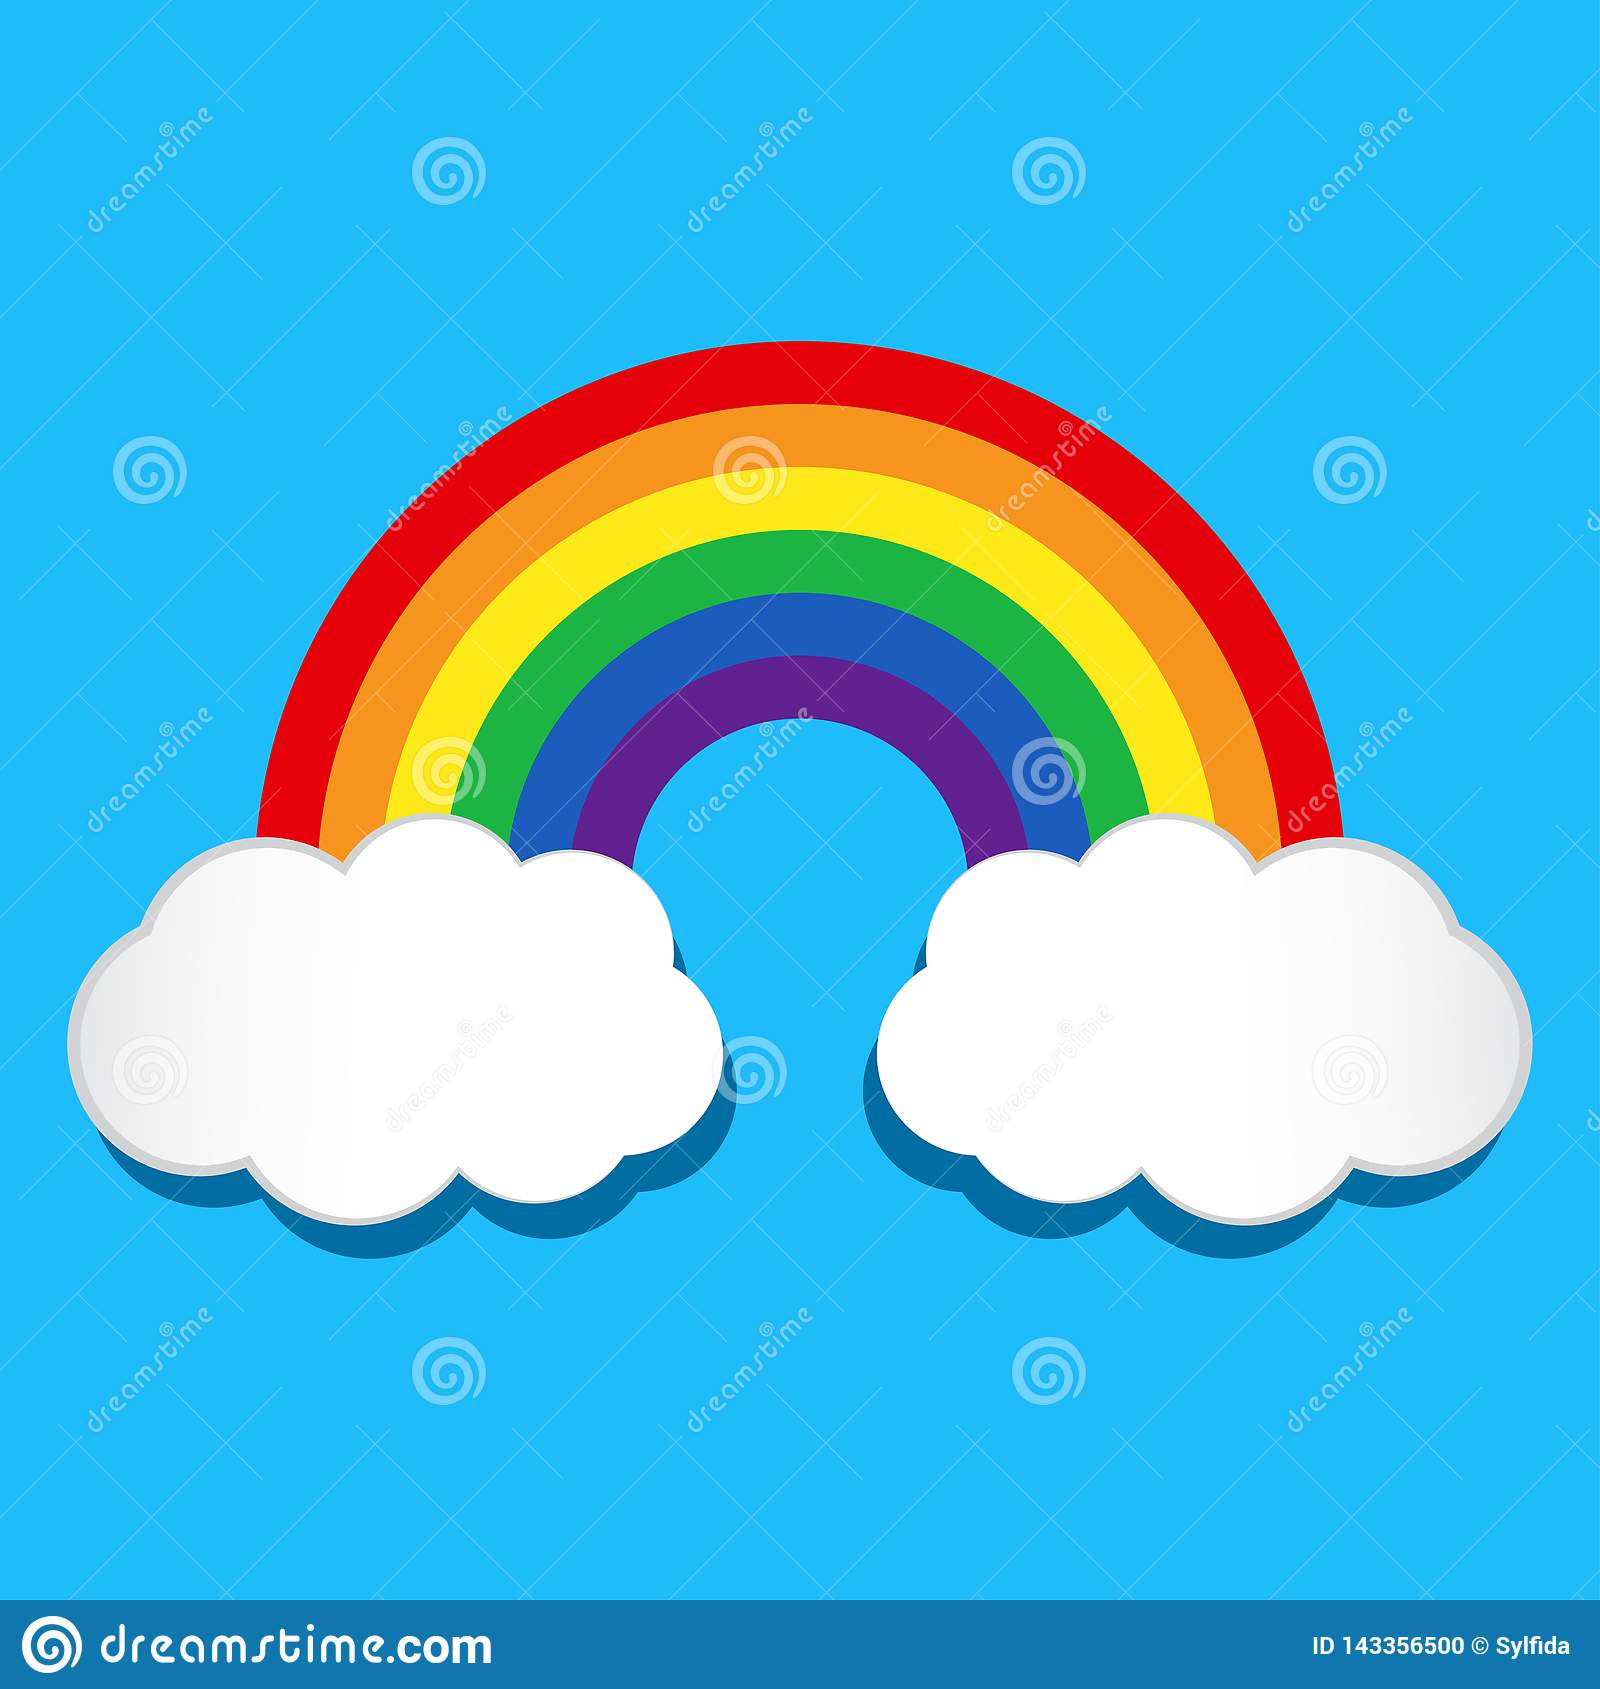 Rainbow and clouds. Vector illustration